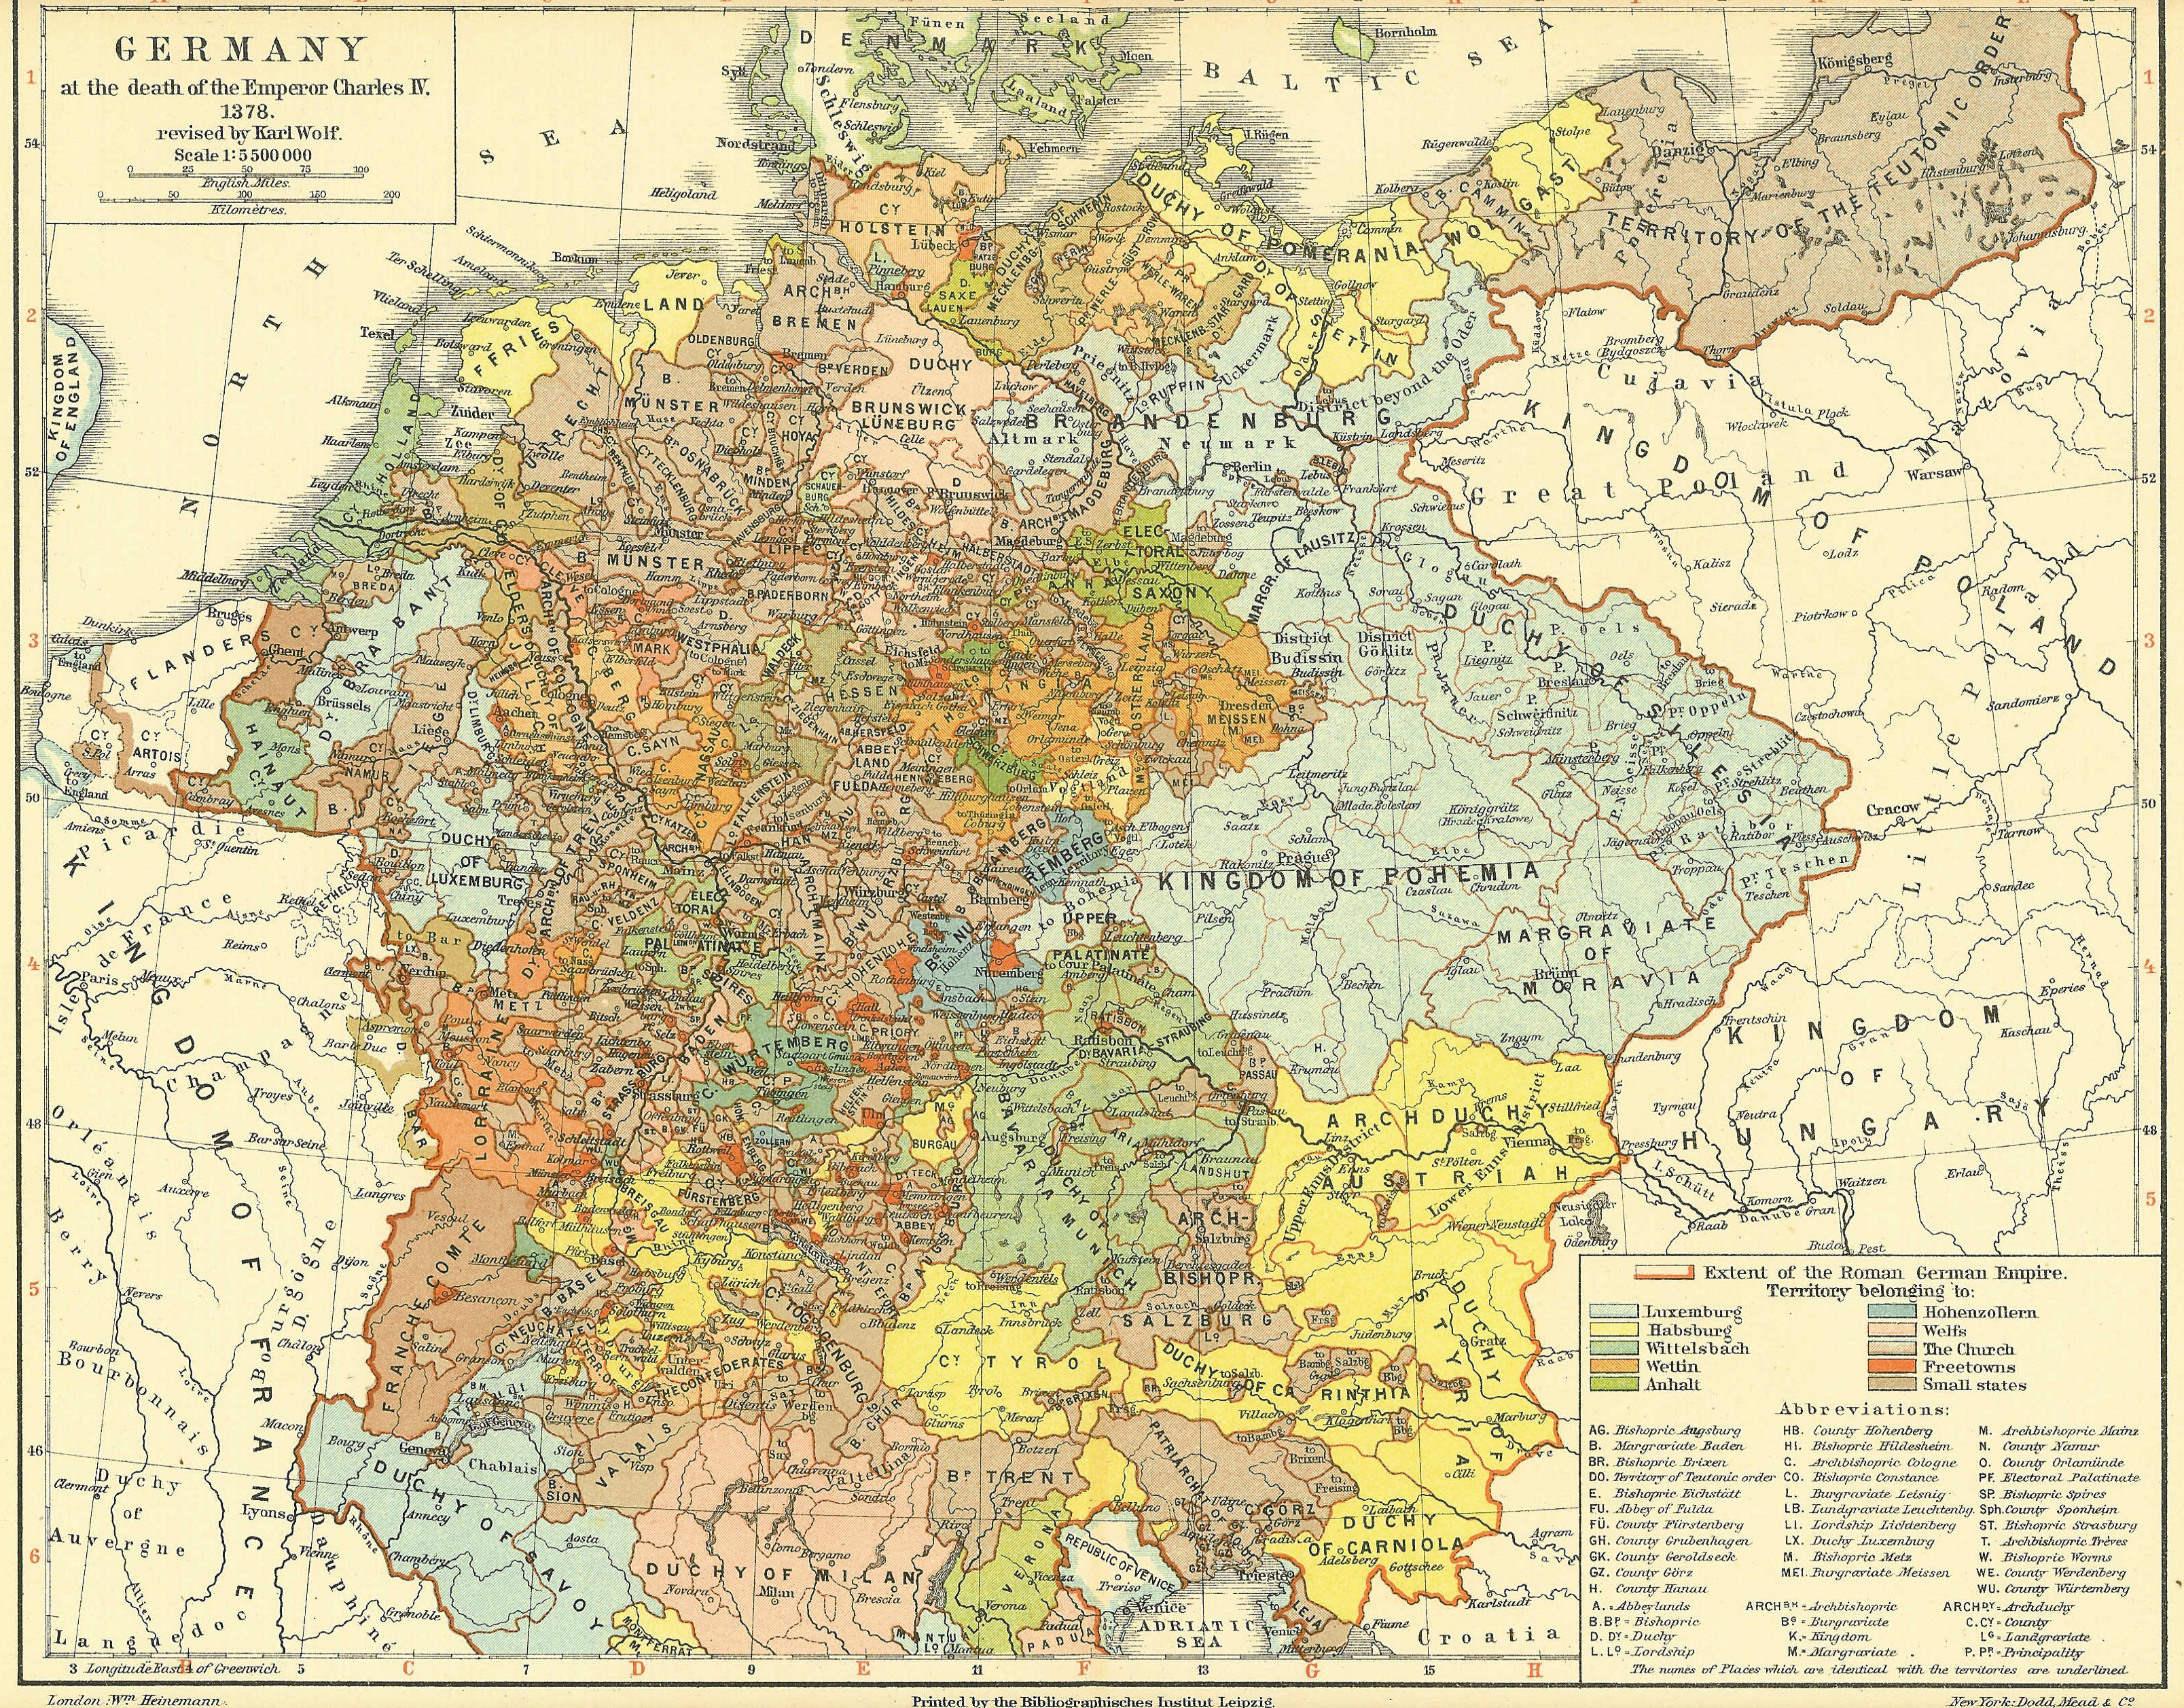 File:Germany 1378 map.jpg